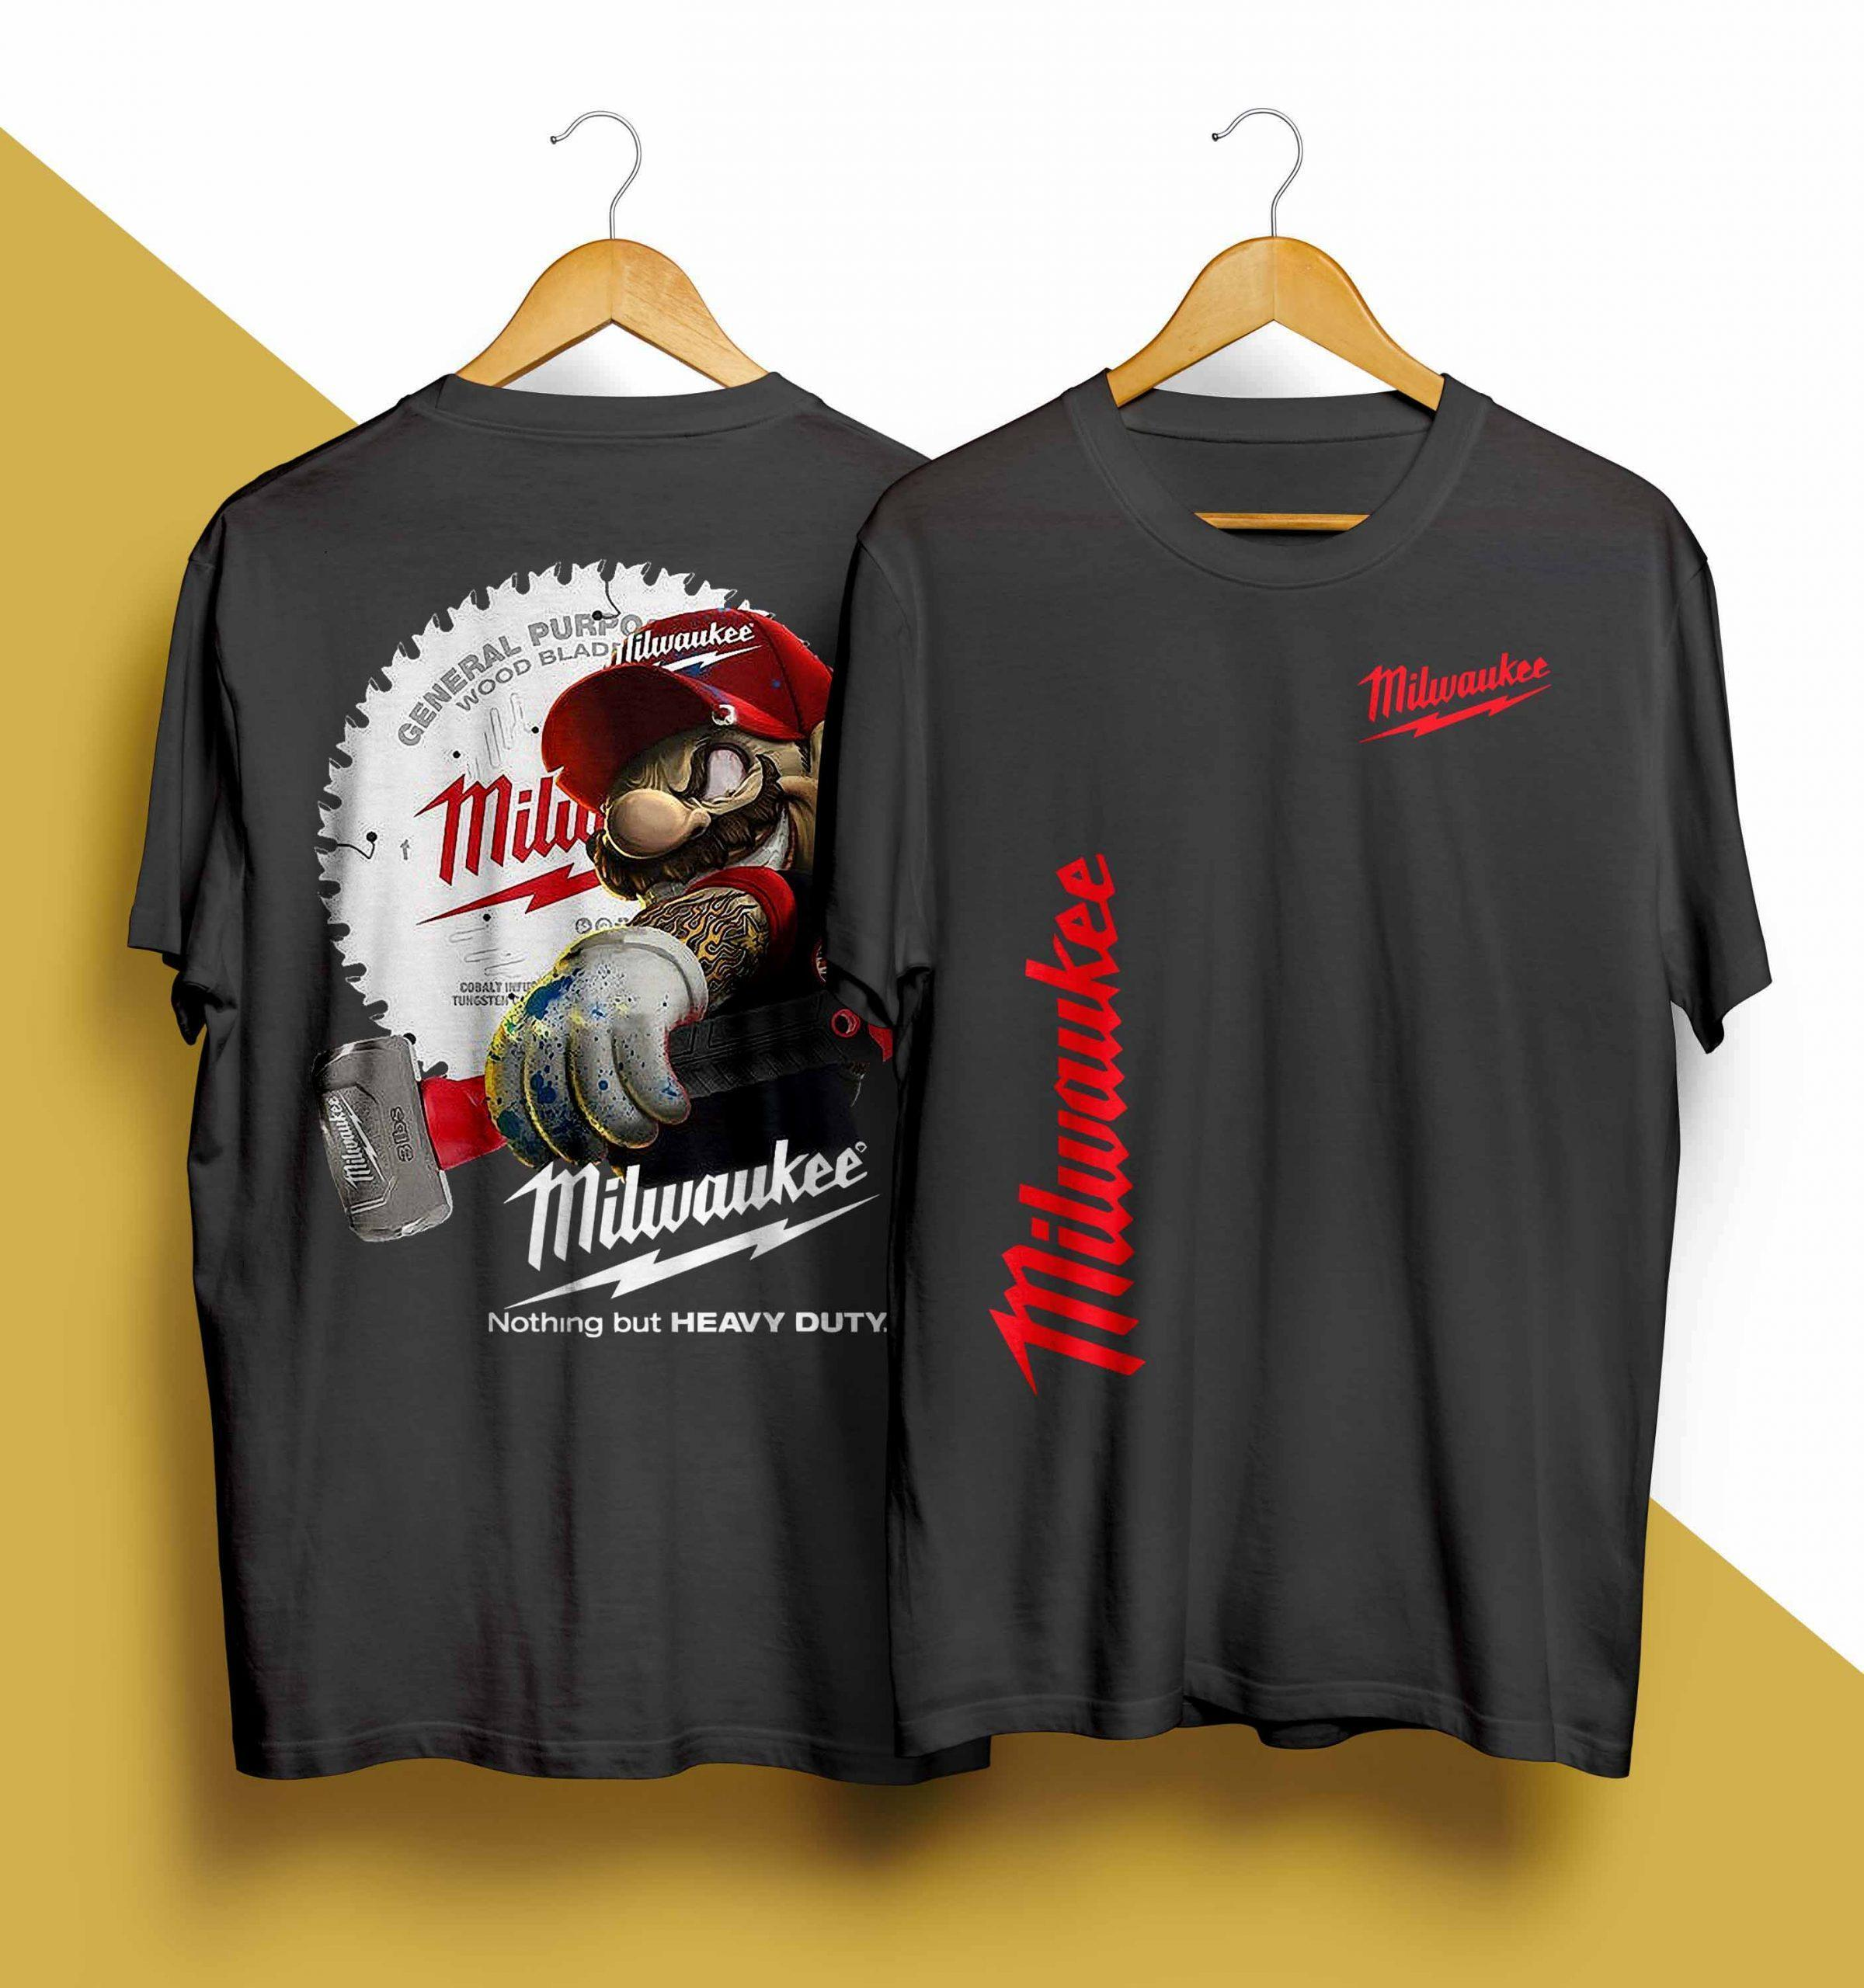 Mario Milwaukee Nothing But Heavy Duty Shirt